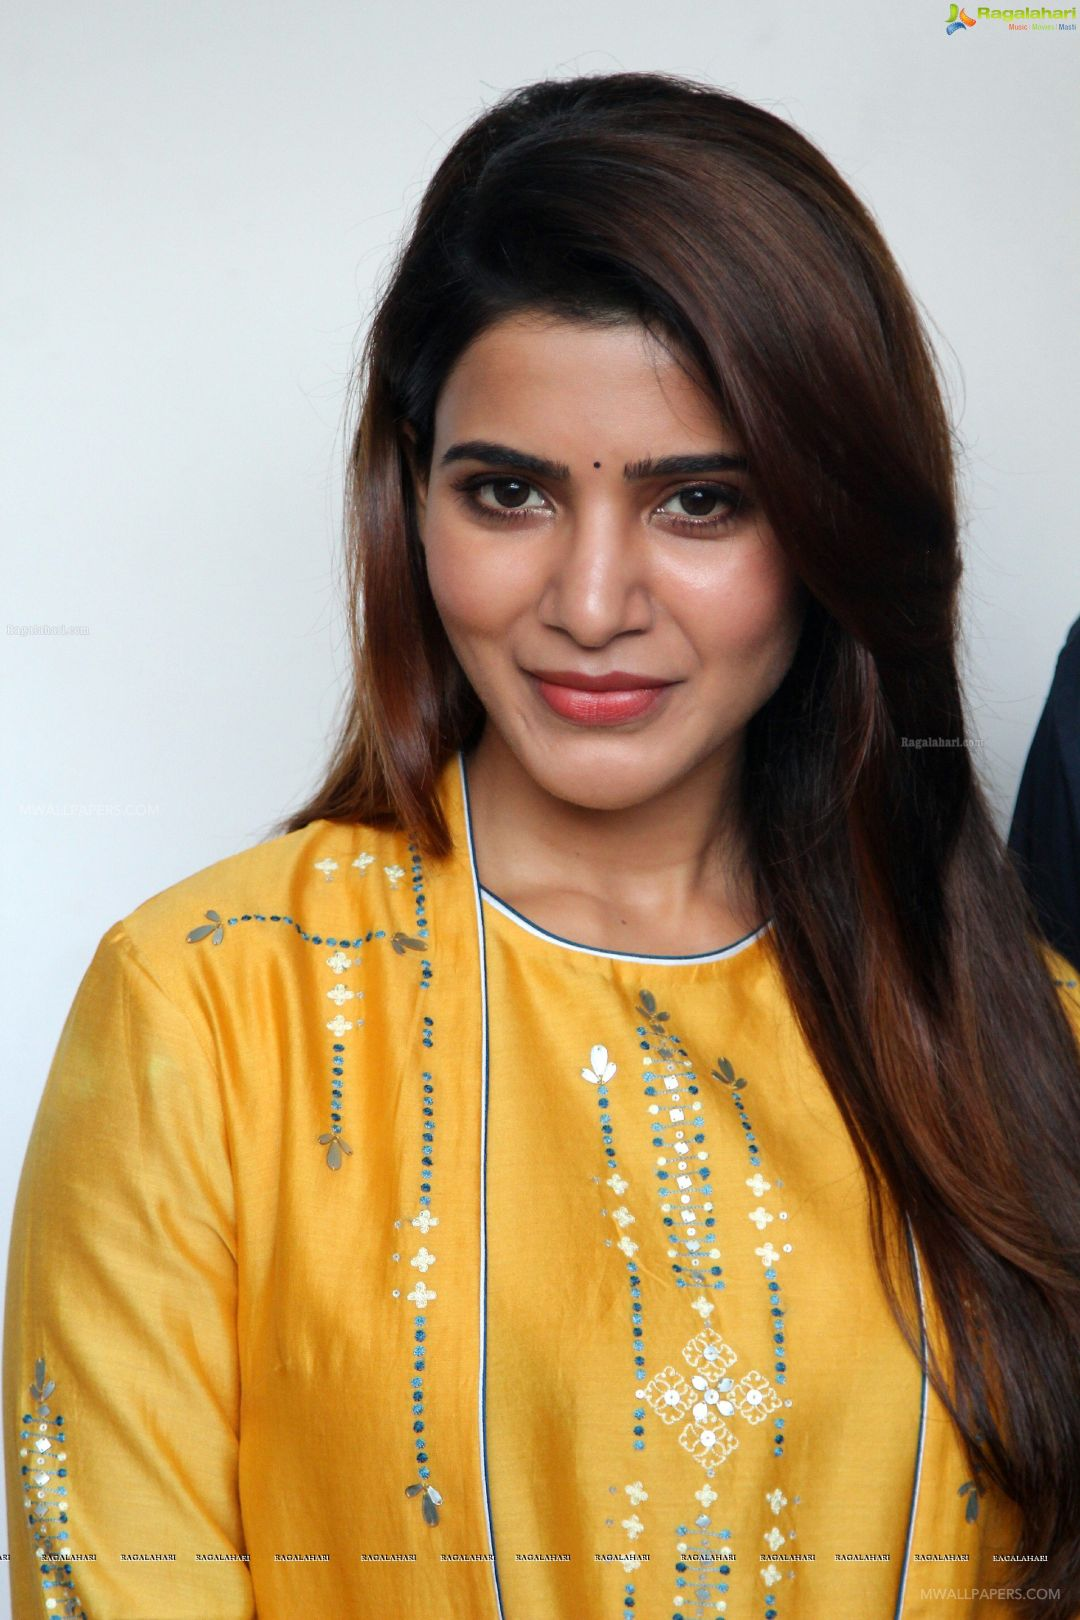 Samantha HD Wallpapers (Desktop Background / Android / iPhone) (1080p, 4k) (38301) - Samantha